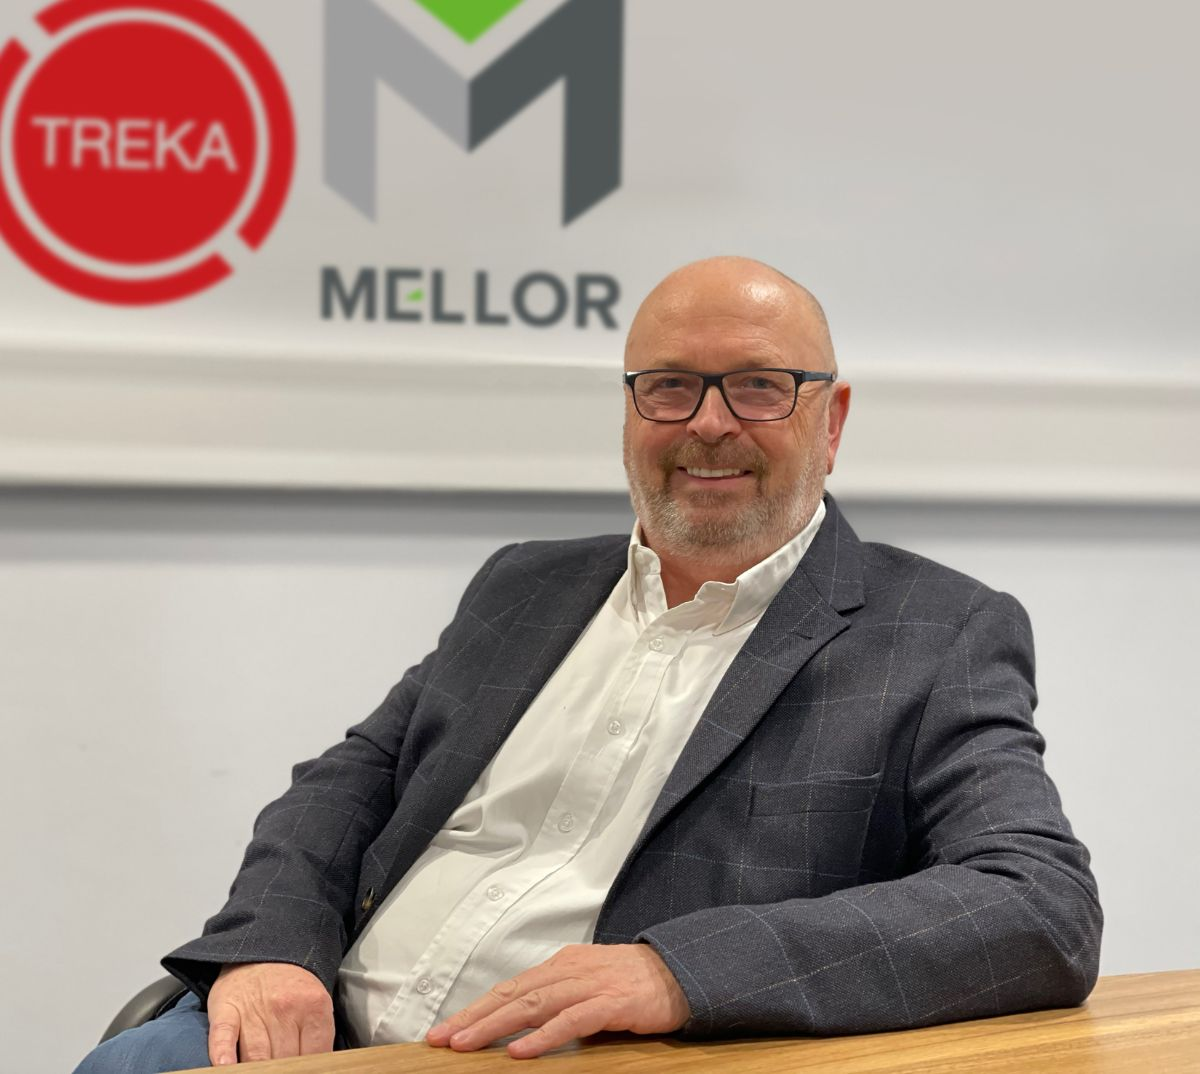 Clissett takes helm at Mellor Bus and Treka